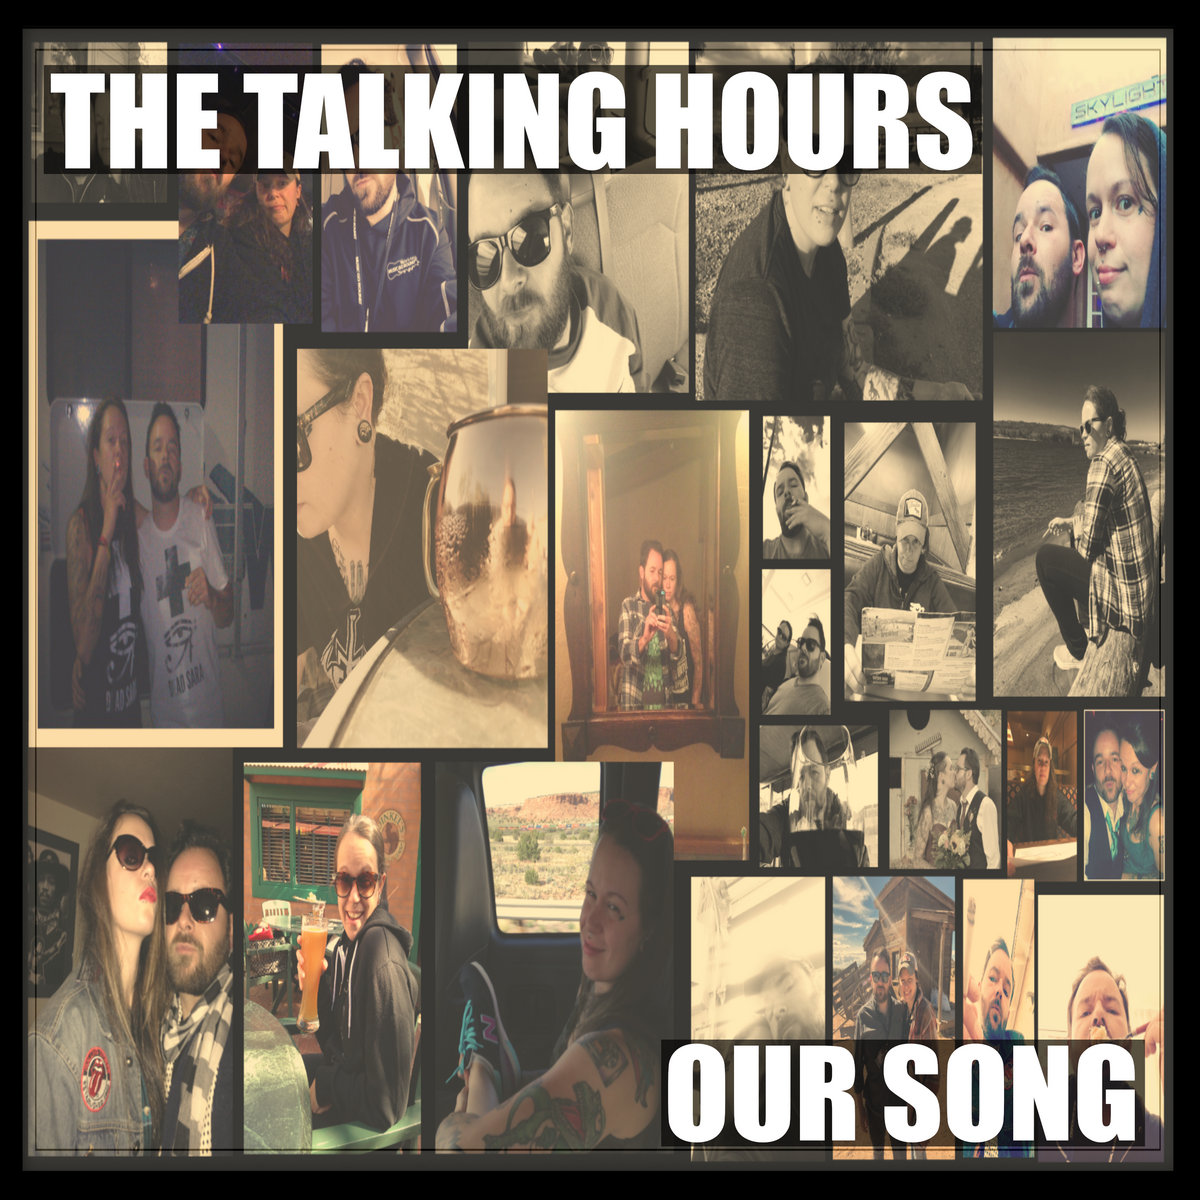 Our Song by The Talking Hours